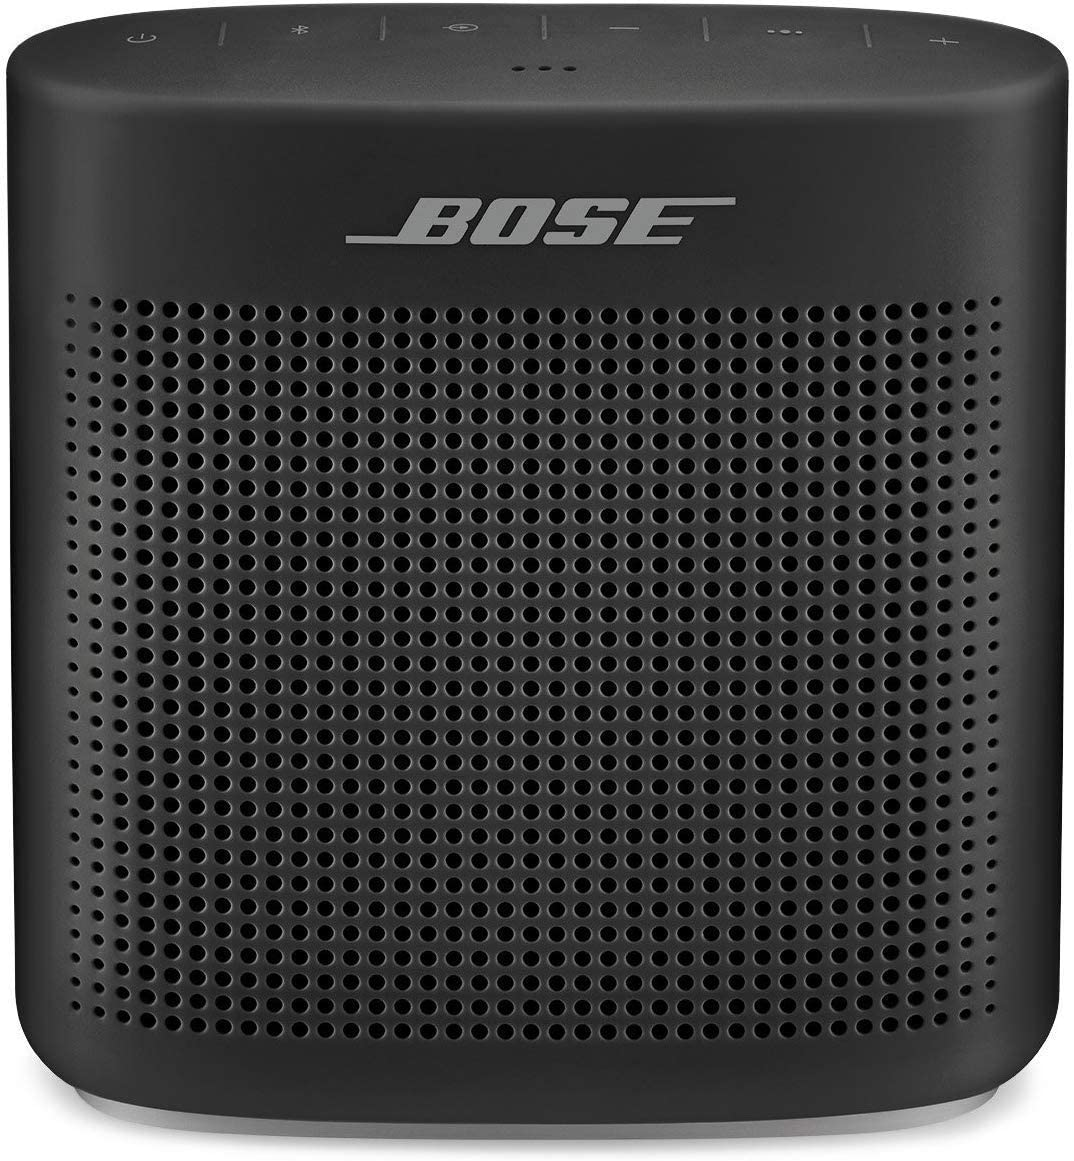 With Bose technology that packs bold sound into a small, water resistant speaker, a built-in mic for speakerphone so your S.O. can take conference and personal calls from 30 feet away, and an easy grab-and-go design, this speaker will make life easier for them. It's $130 on Amazon.